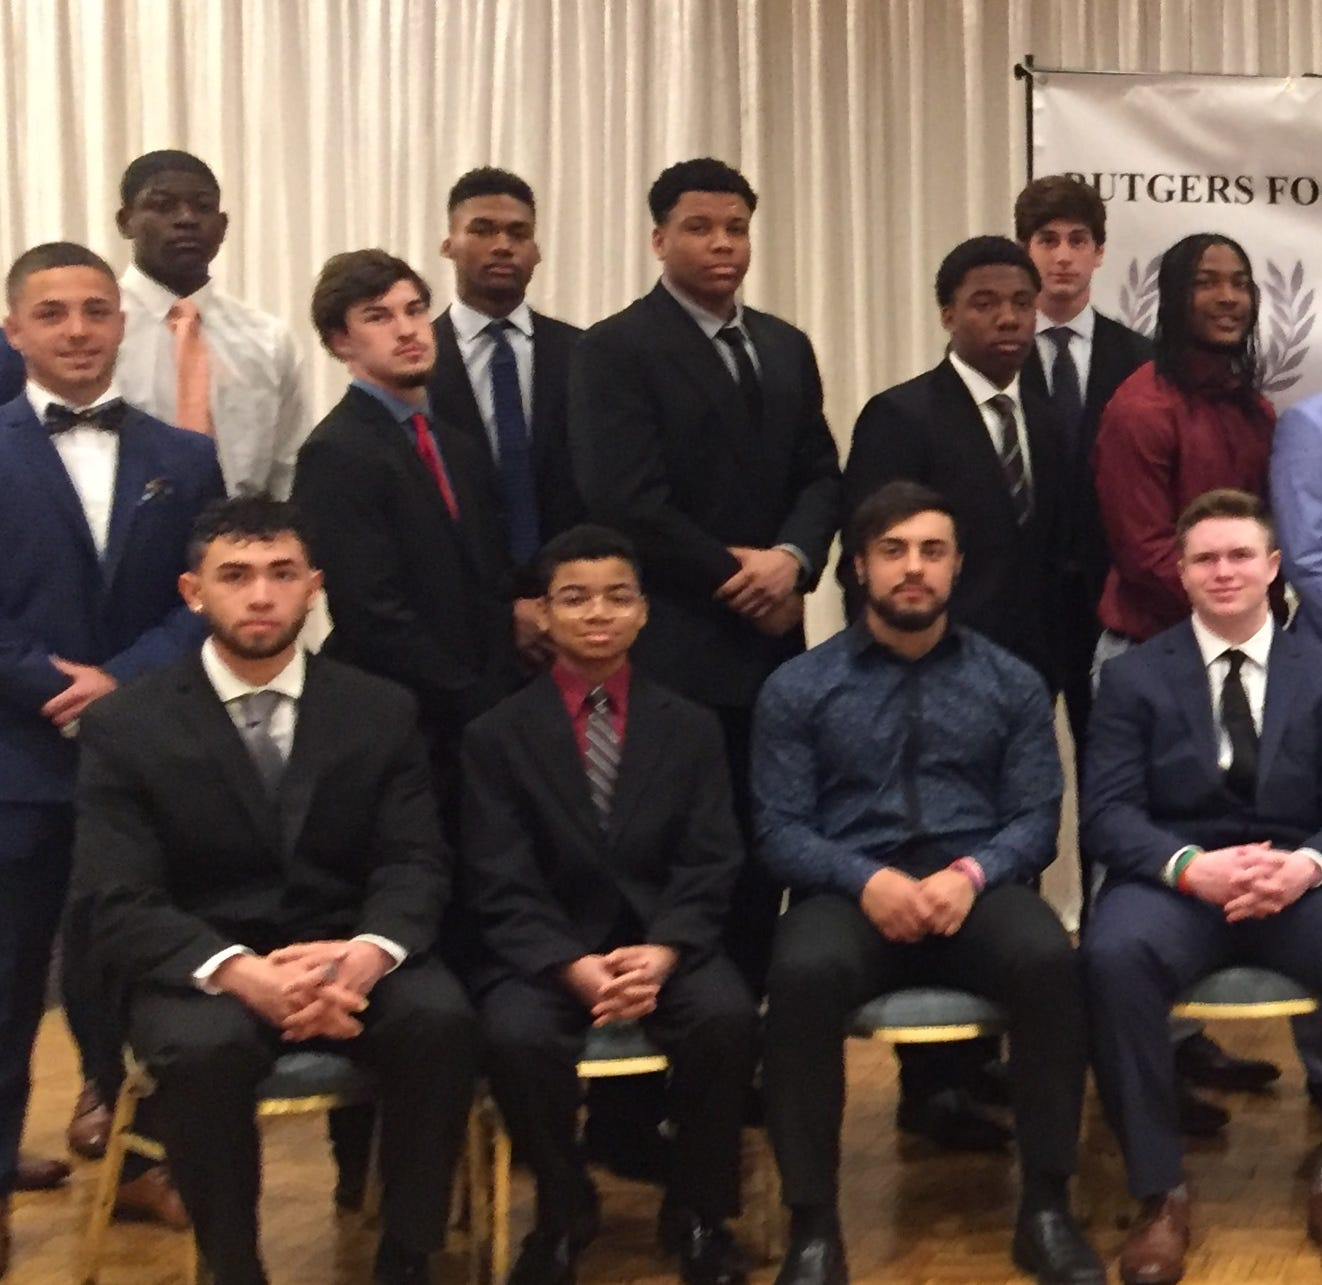 NJ football: Players honored during prestigious Bill Denny awards luncheon